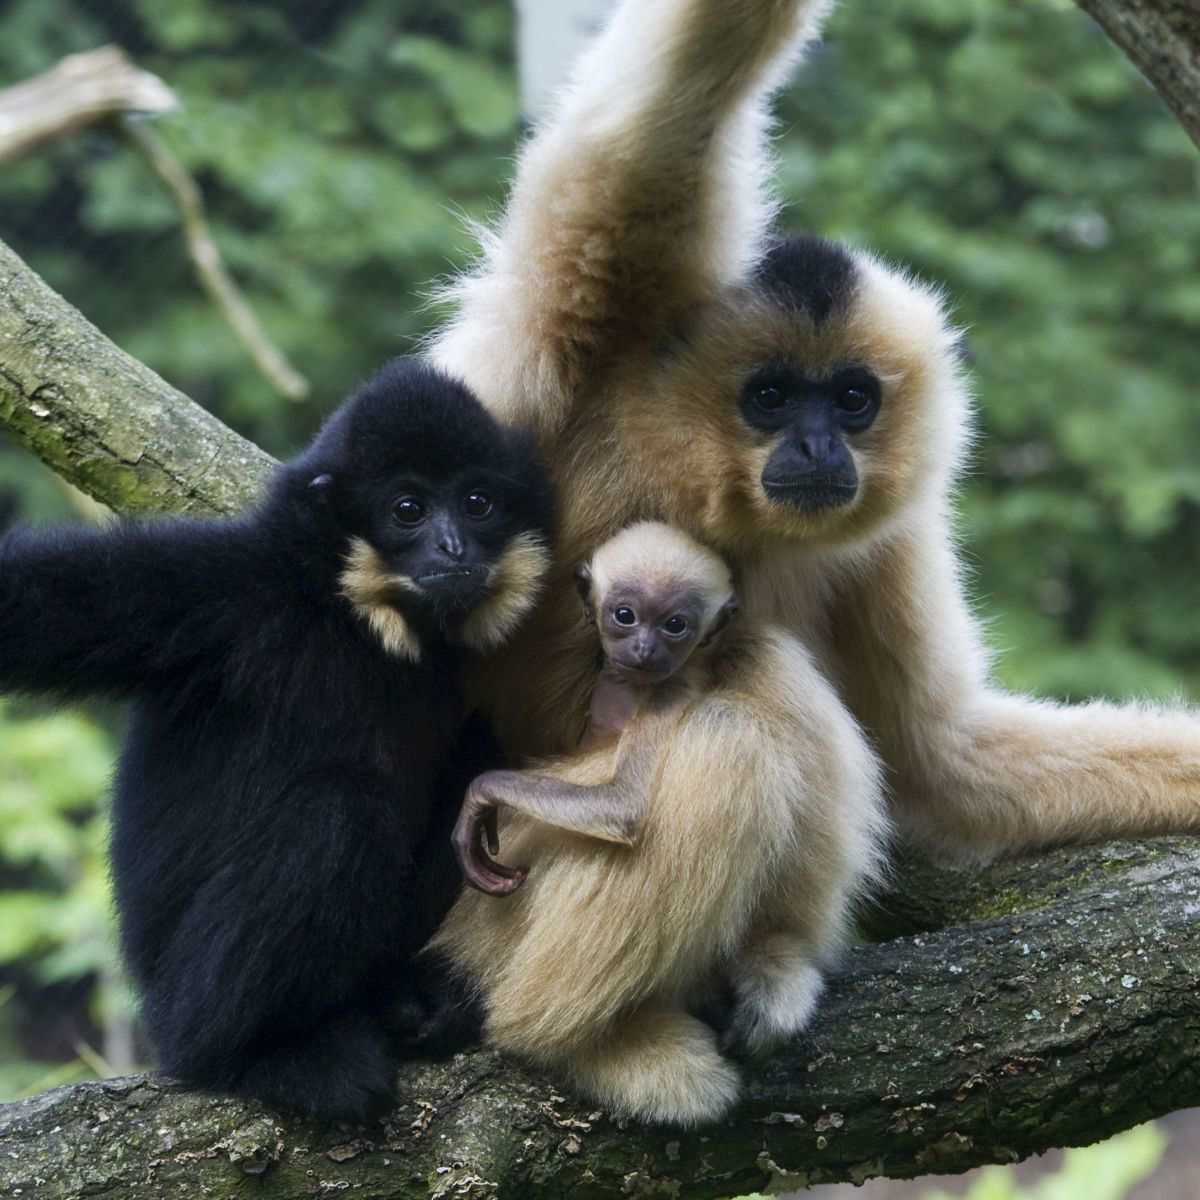 Northern Yellow-cheeked Crested Gibbon Nomascus annamensis